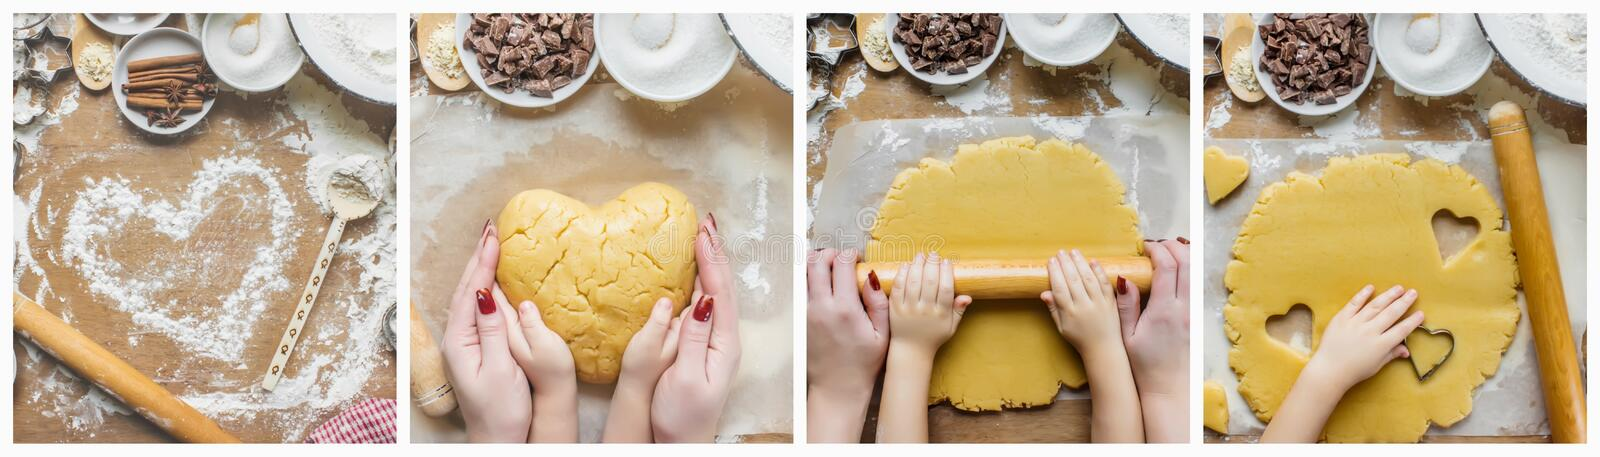 Collage Pastry, cakes, cook their own hands. stock photo